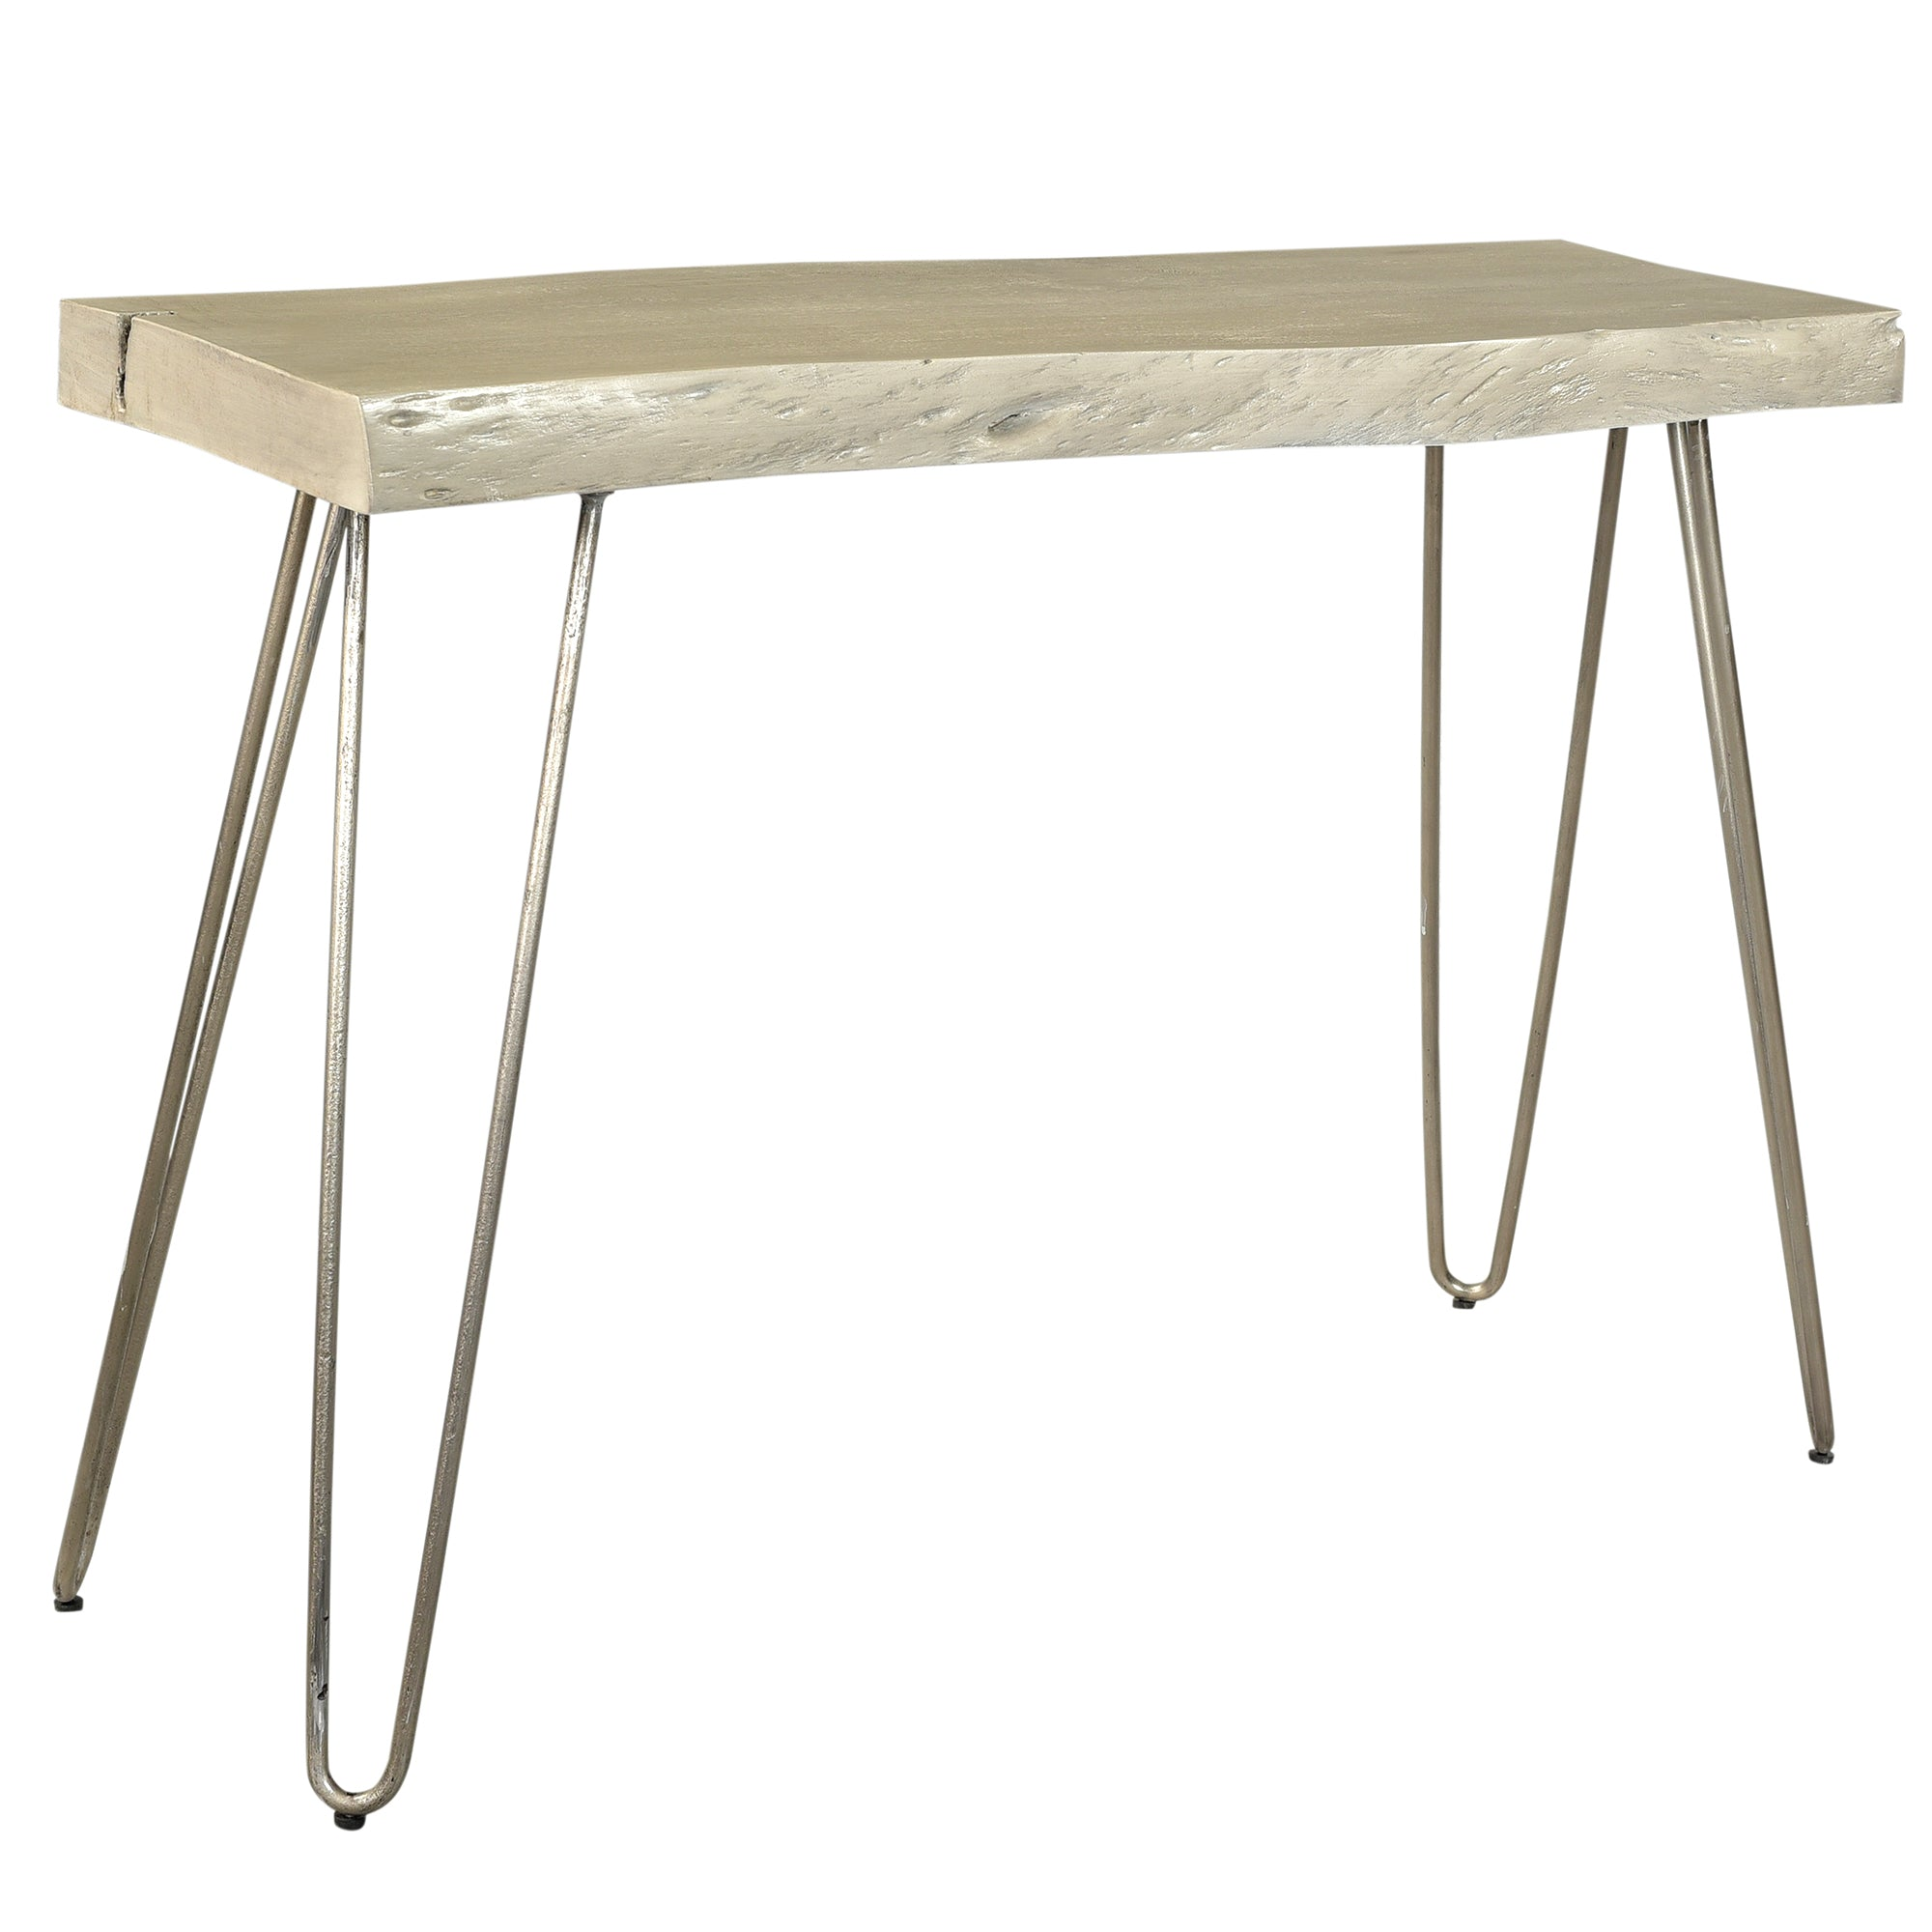 Nila Console Table - Light Grey